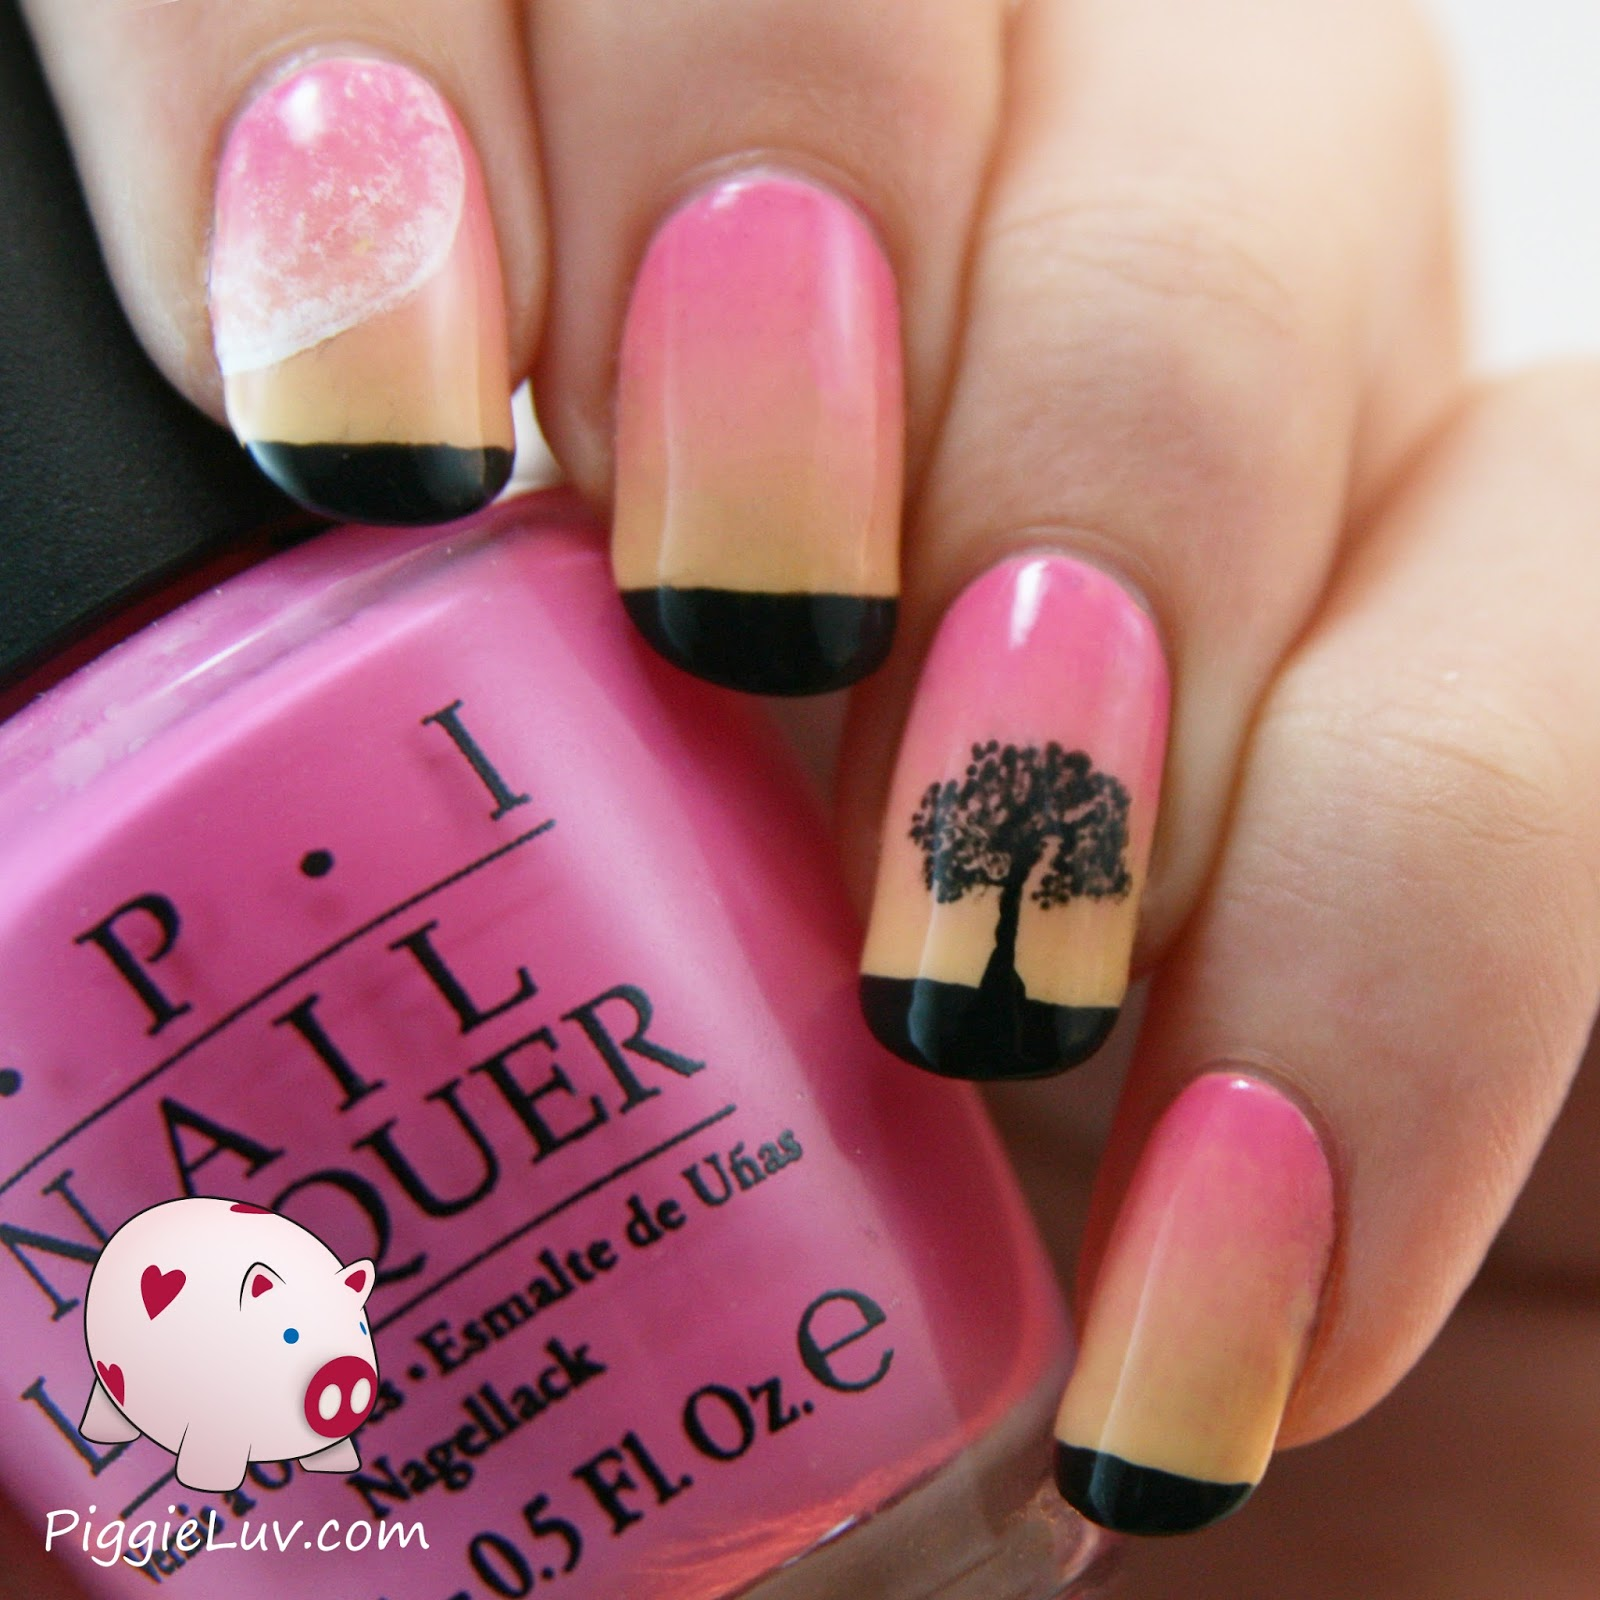 Gradient Nail Art: PiggieLuv: Soft Sunset Gradient Nail Art